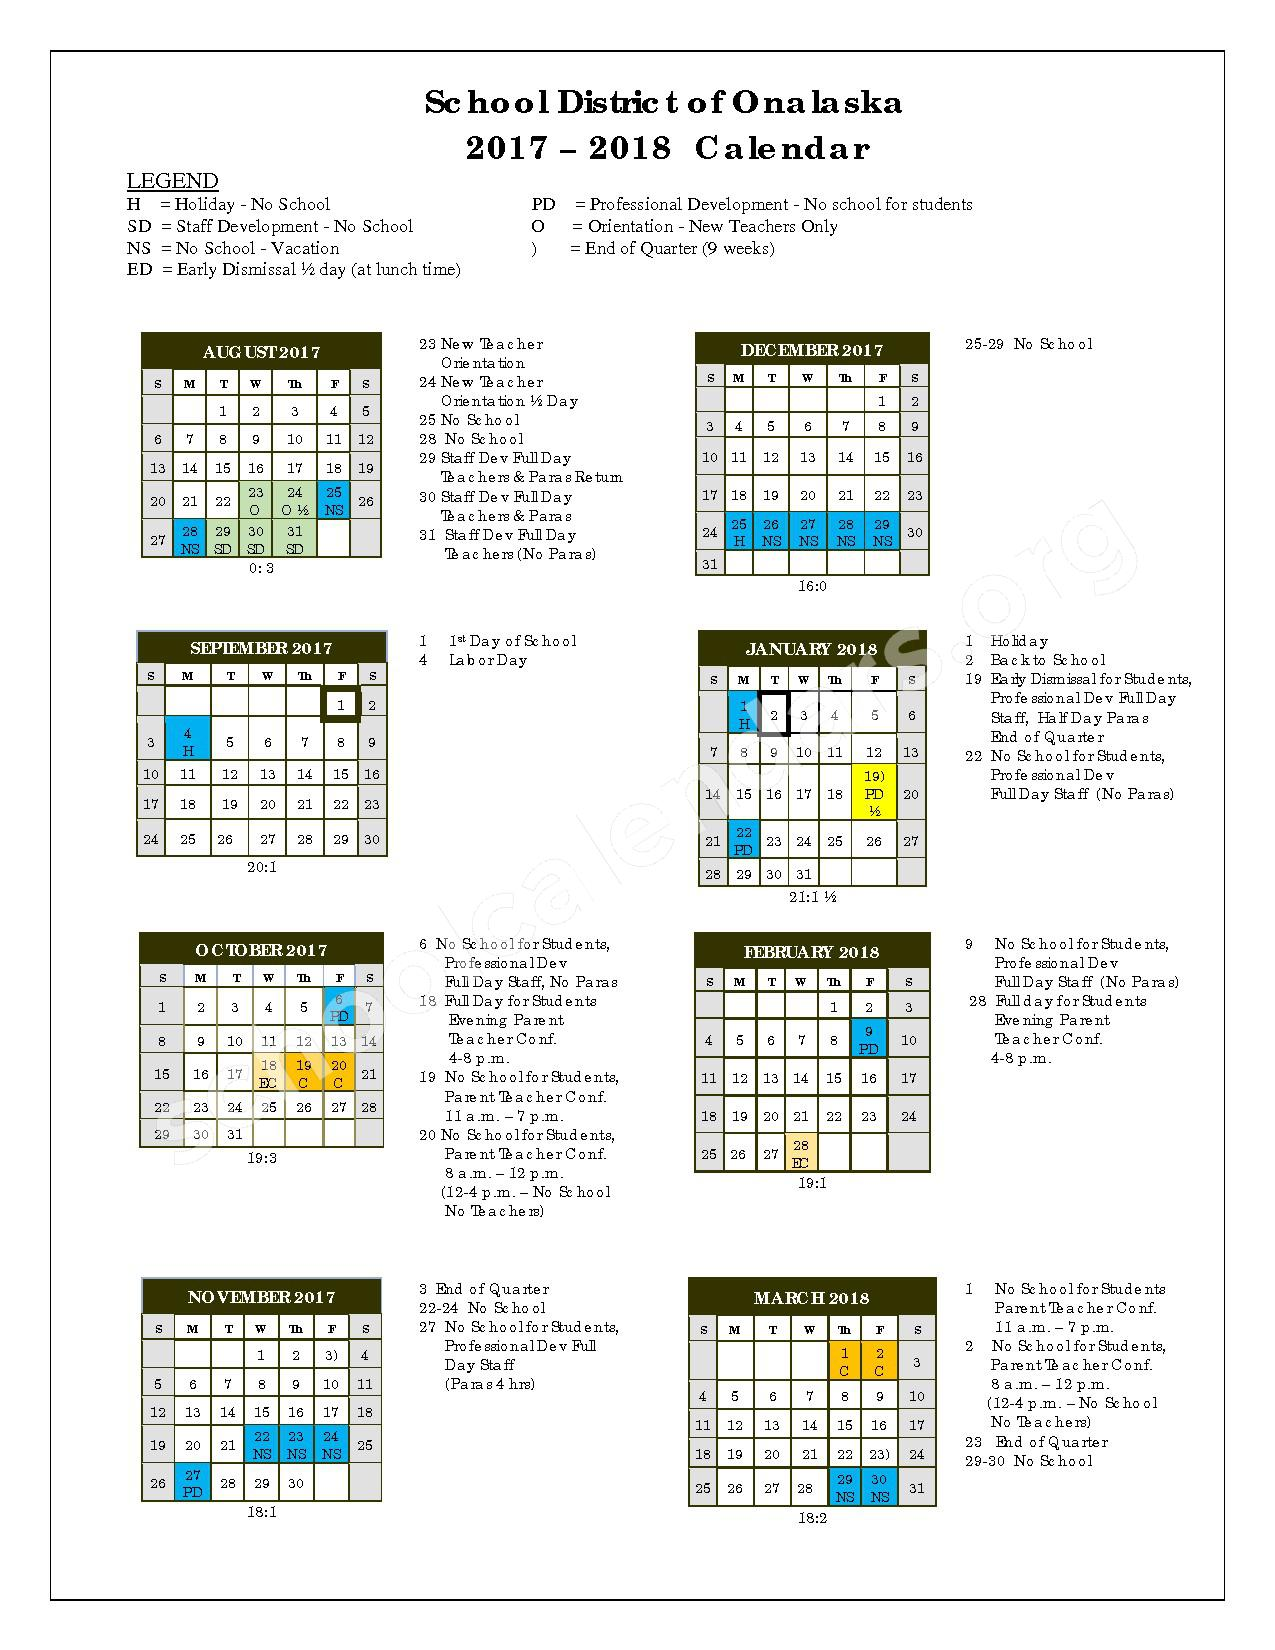 2017 - 2018 District Calendar – Onalaska School District – page 1